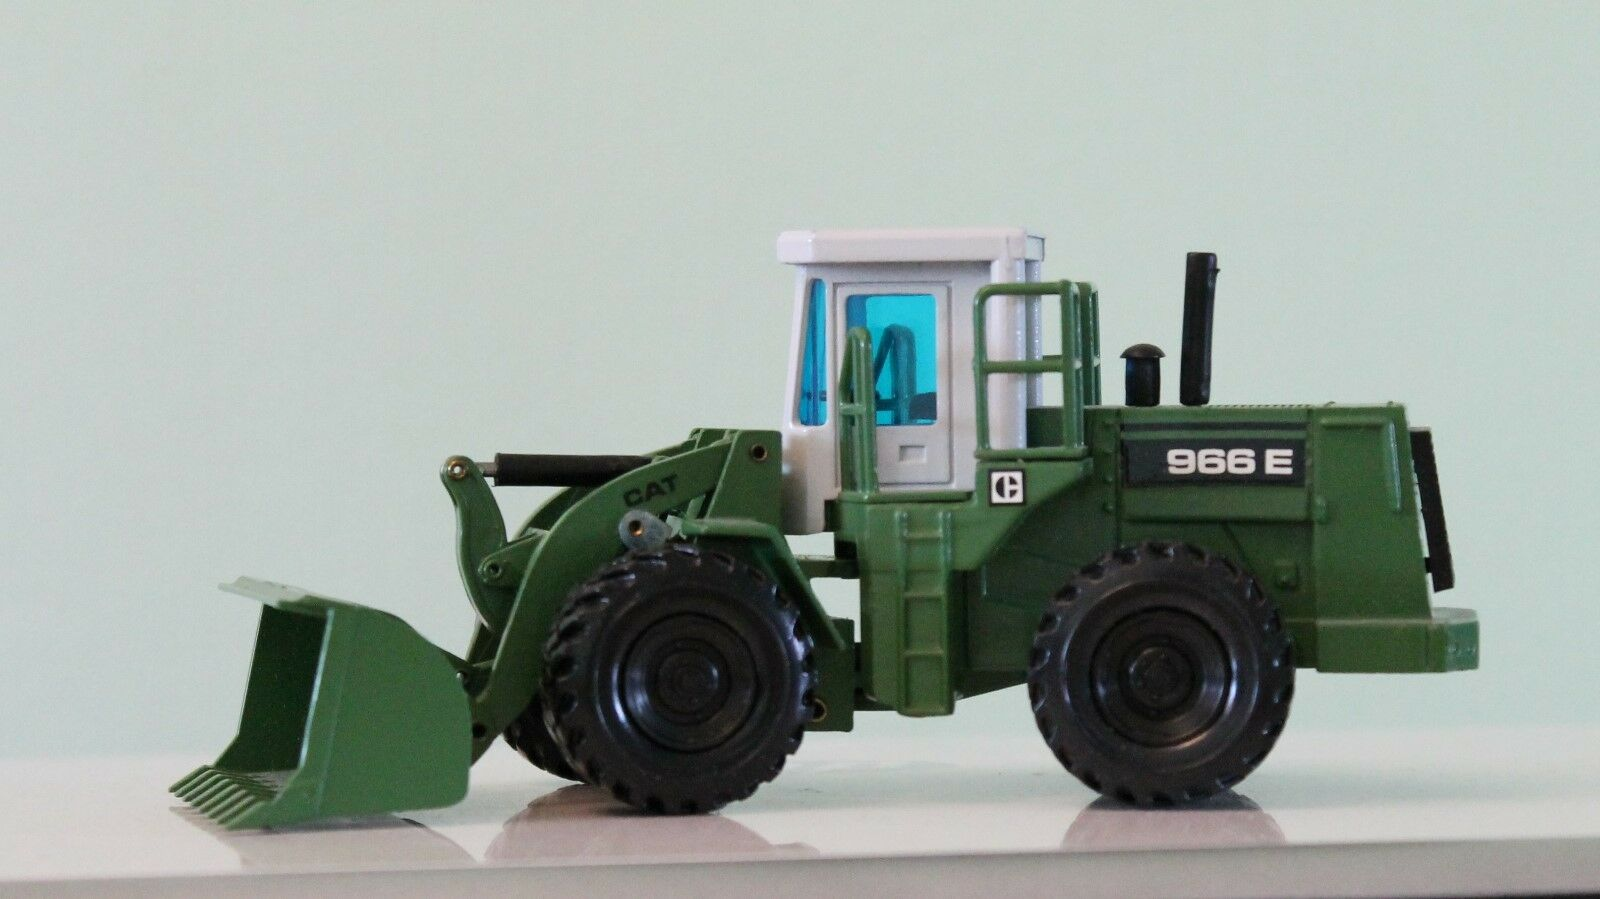 CAT 966E LOADING SHOVEL IN THE LIVERY OF JEAN BRETANGIER in 1 50 SCALE by NZG